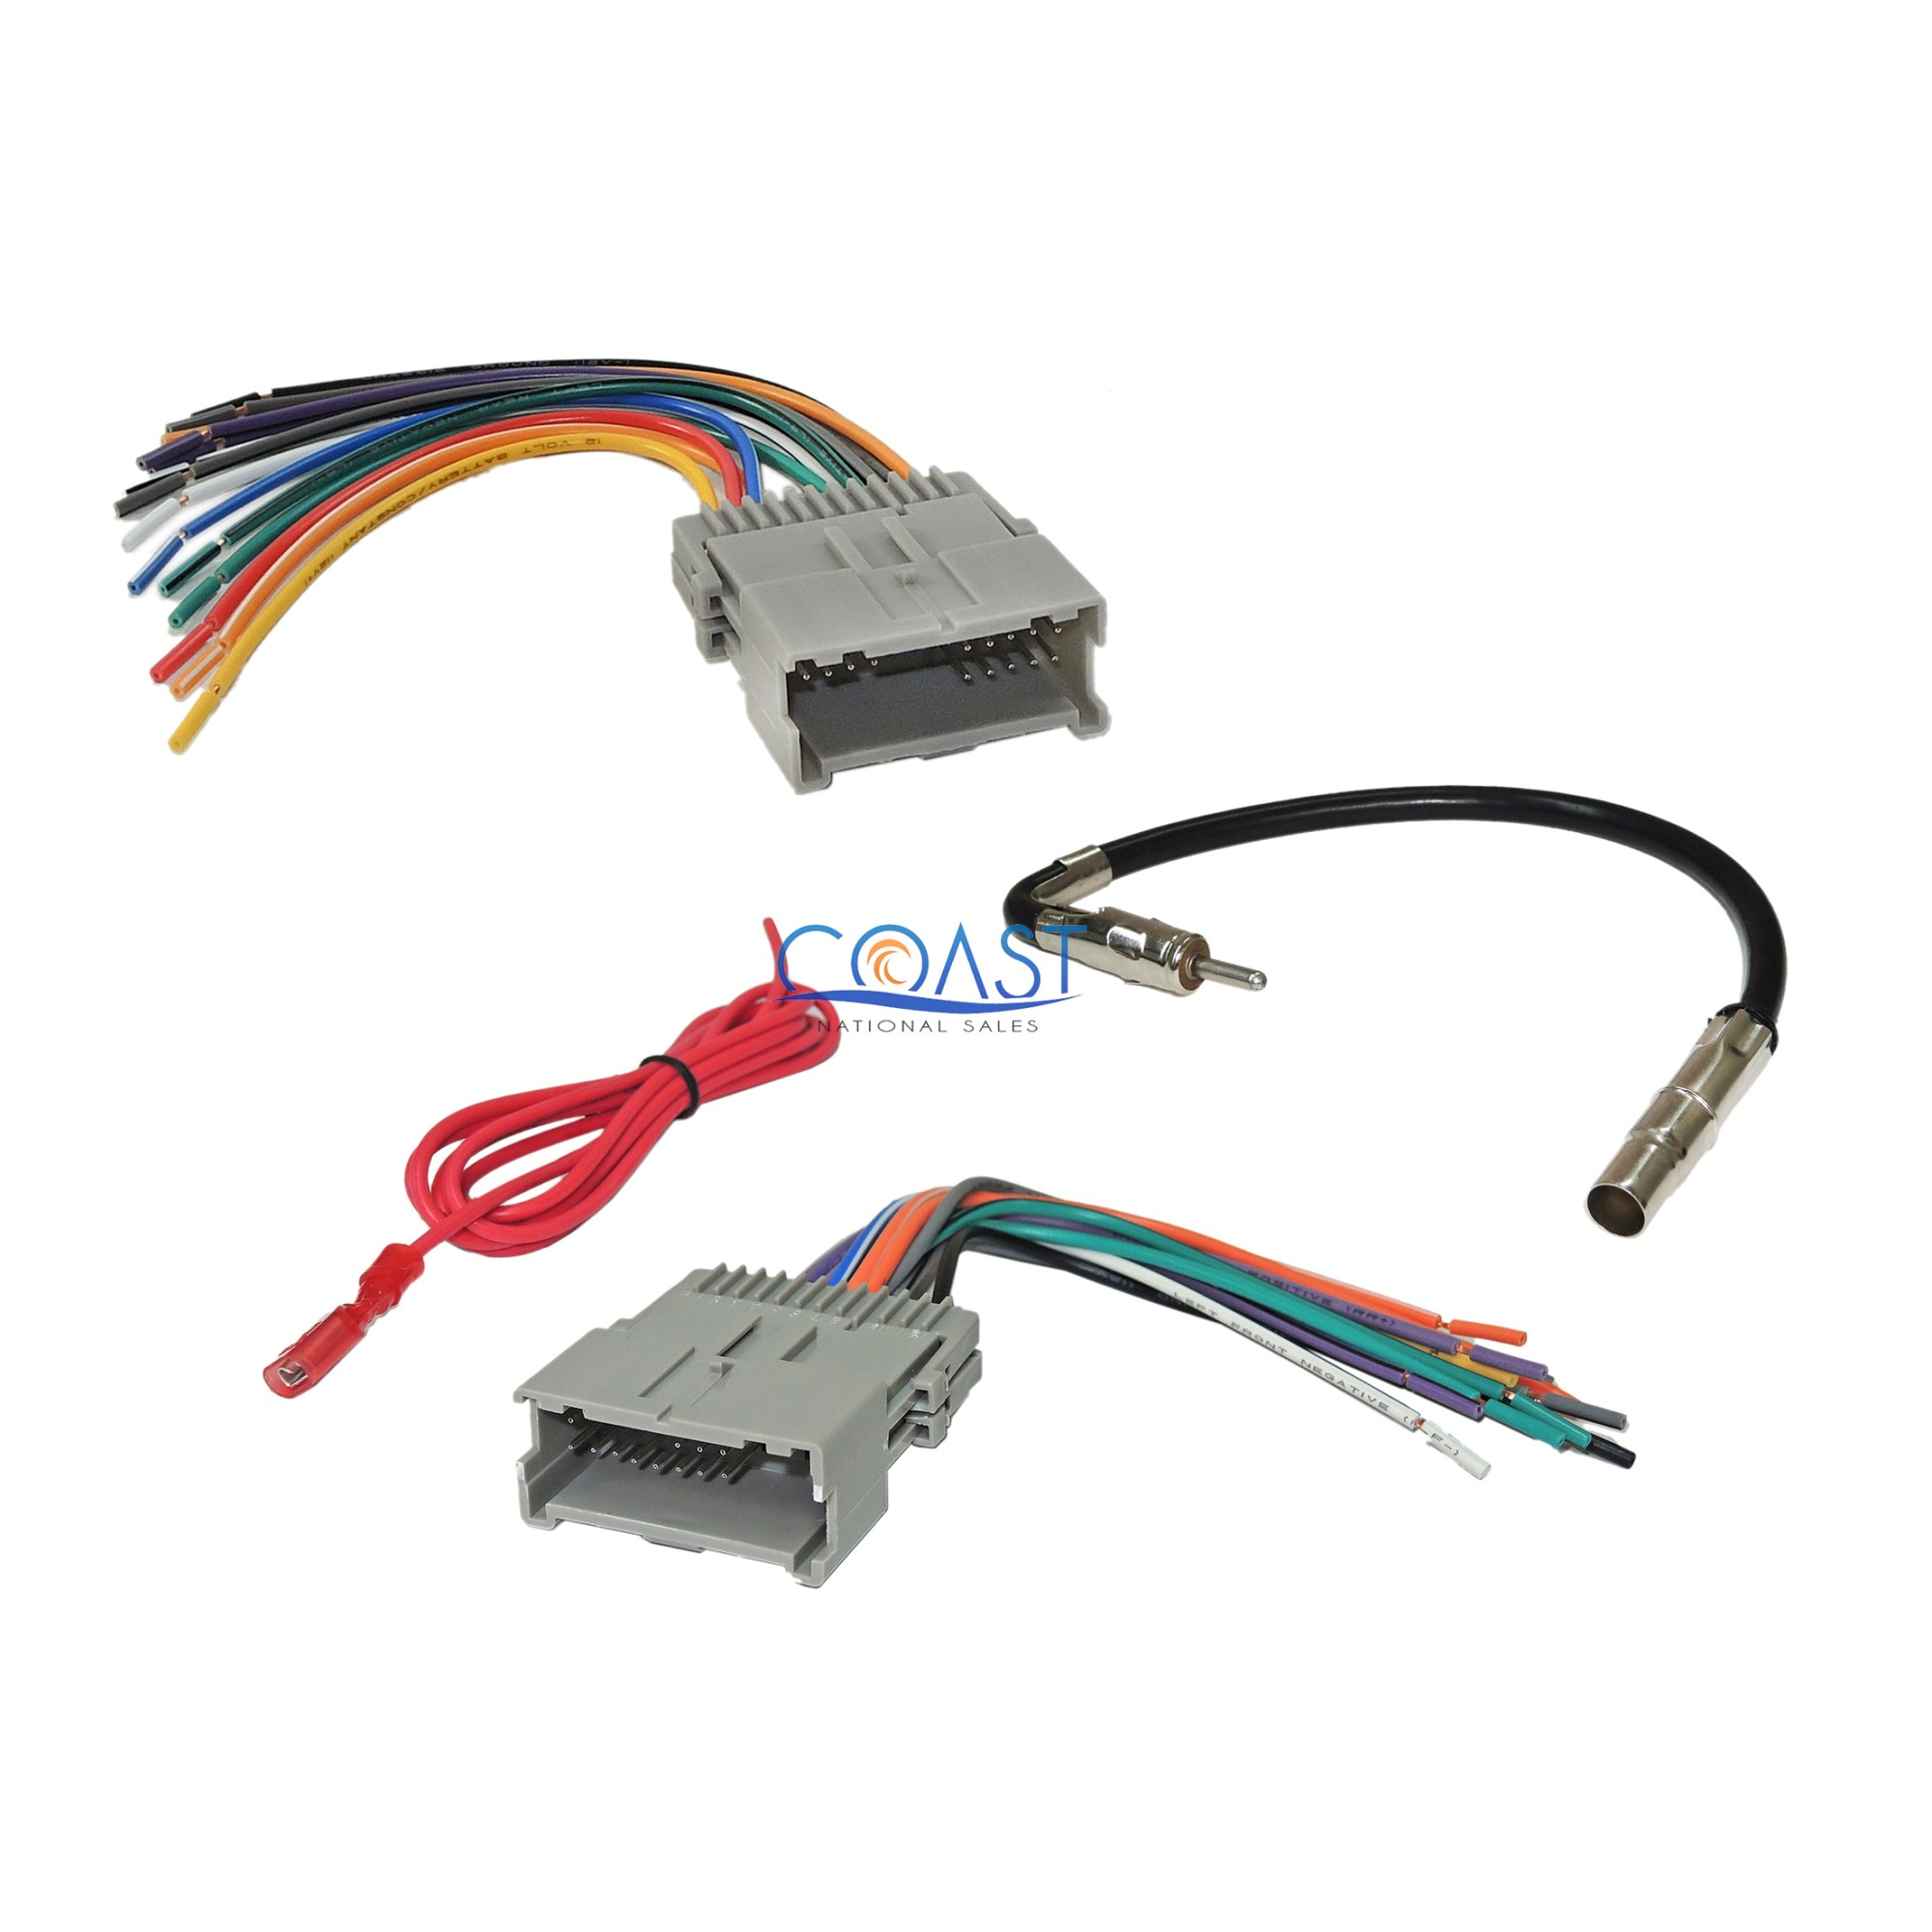 hight resolution of details about gm car radio stereo wiring harness antenna combo for 1992 up chevy gmc pontiac